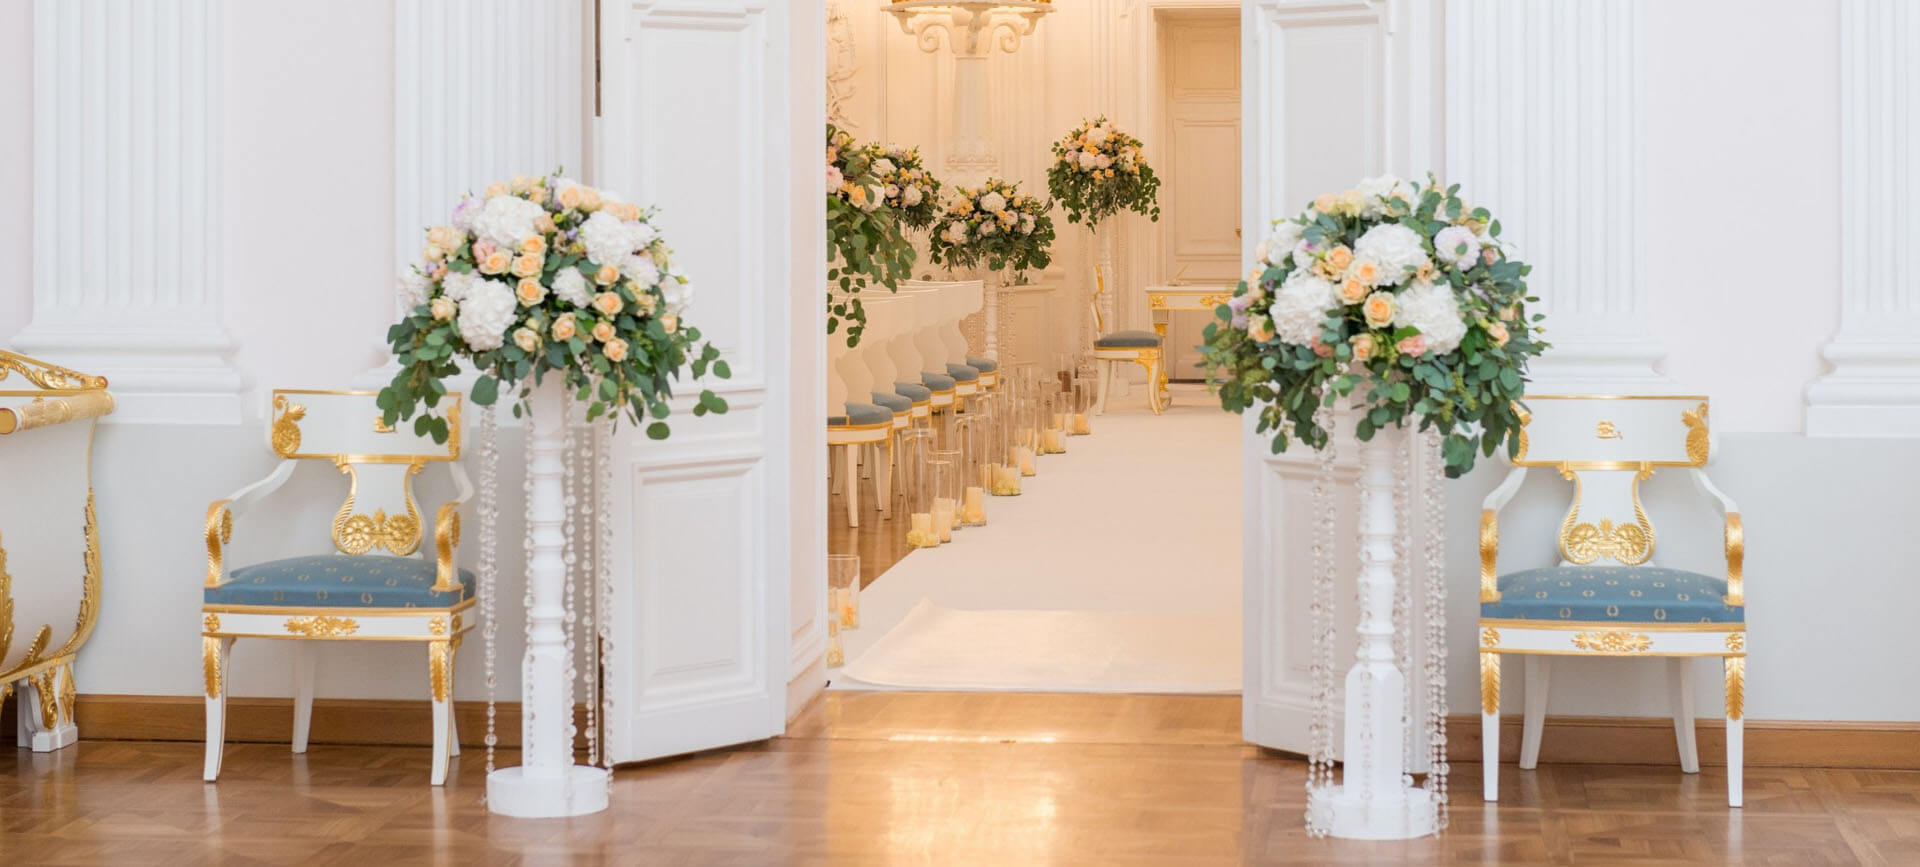 Wedding Venues in Mayfair